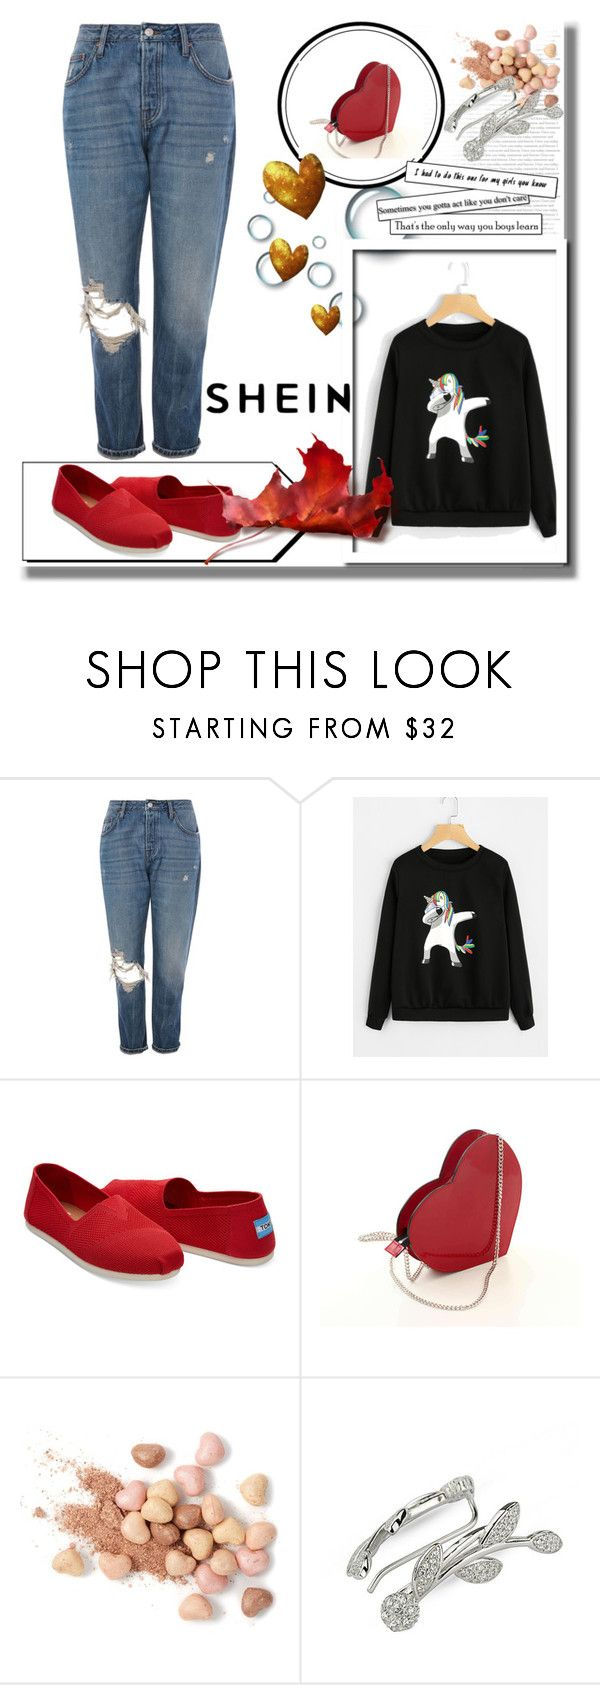 """""""Shein contest"""" by naruto-minato ❤ liked on Polyvore featuring Topshop, TOMS and Too Faced Cosmetics"""